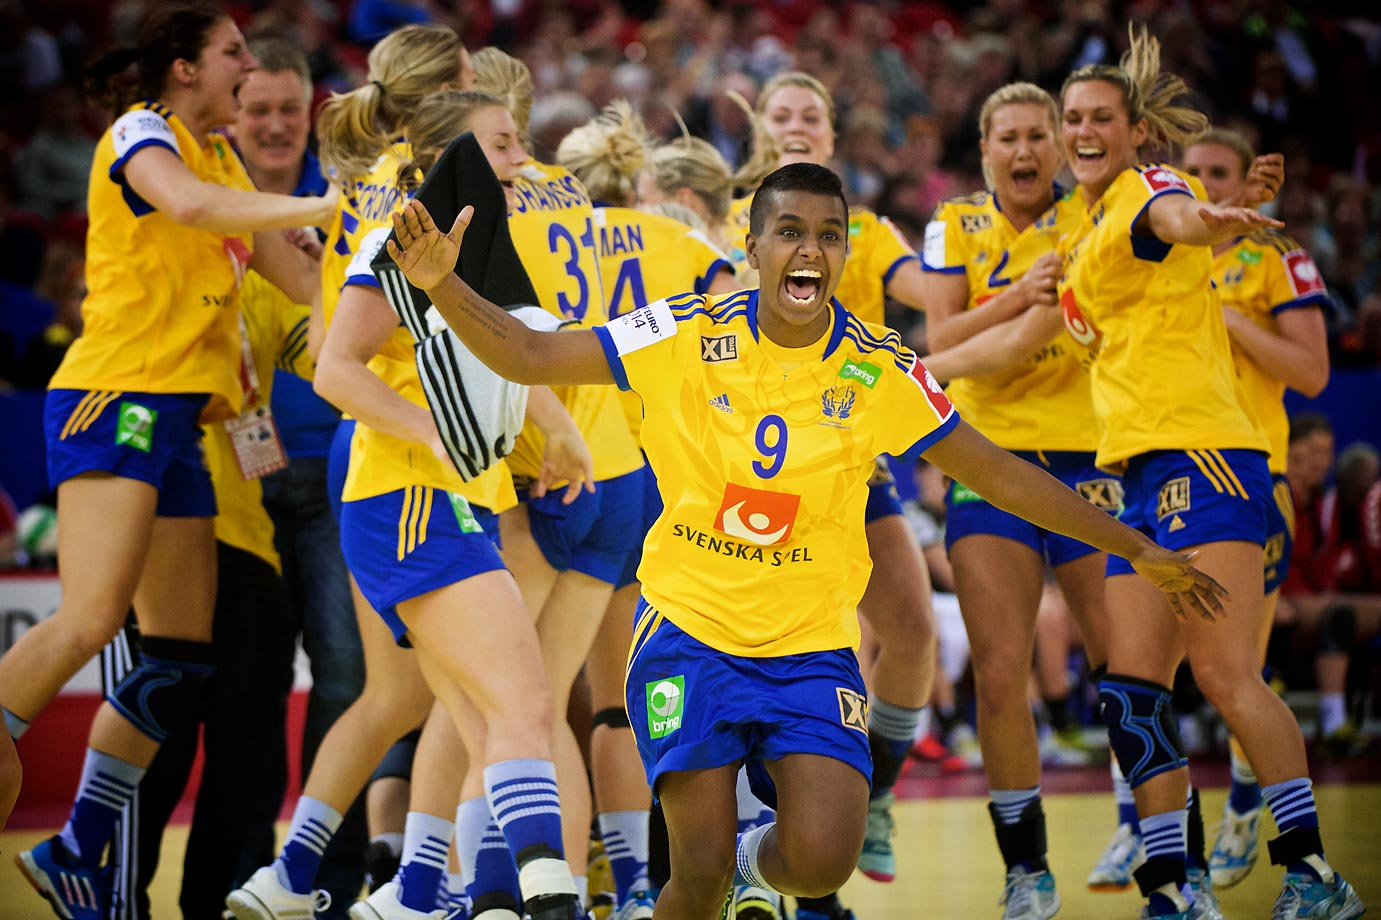 Sweden's Louise Sand celebrates with her team after winning the 3rd place game.